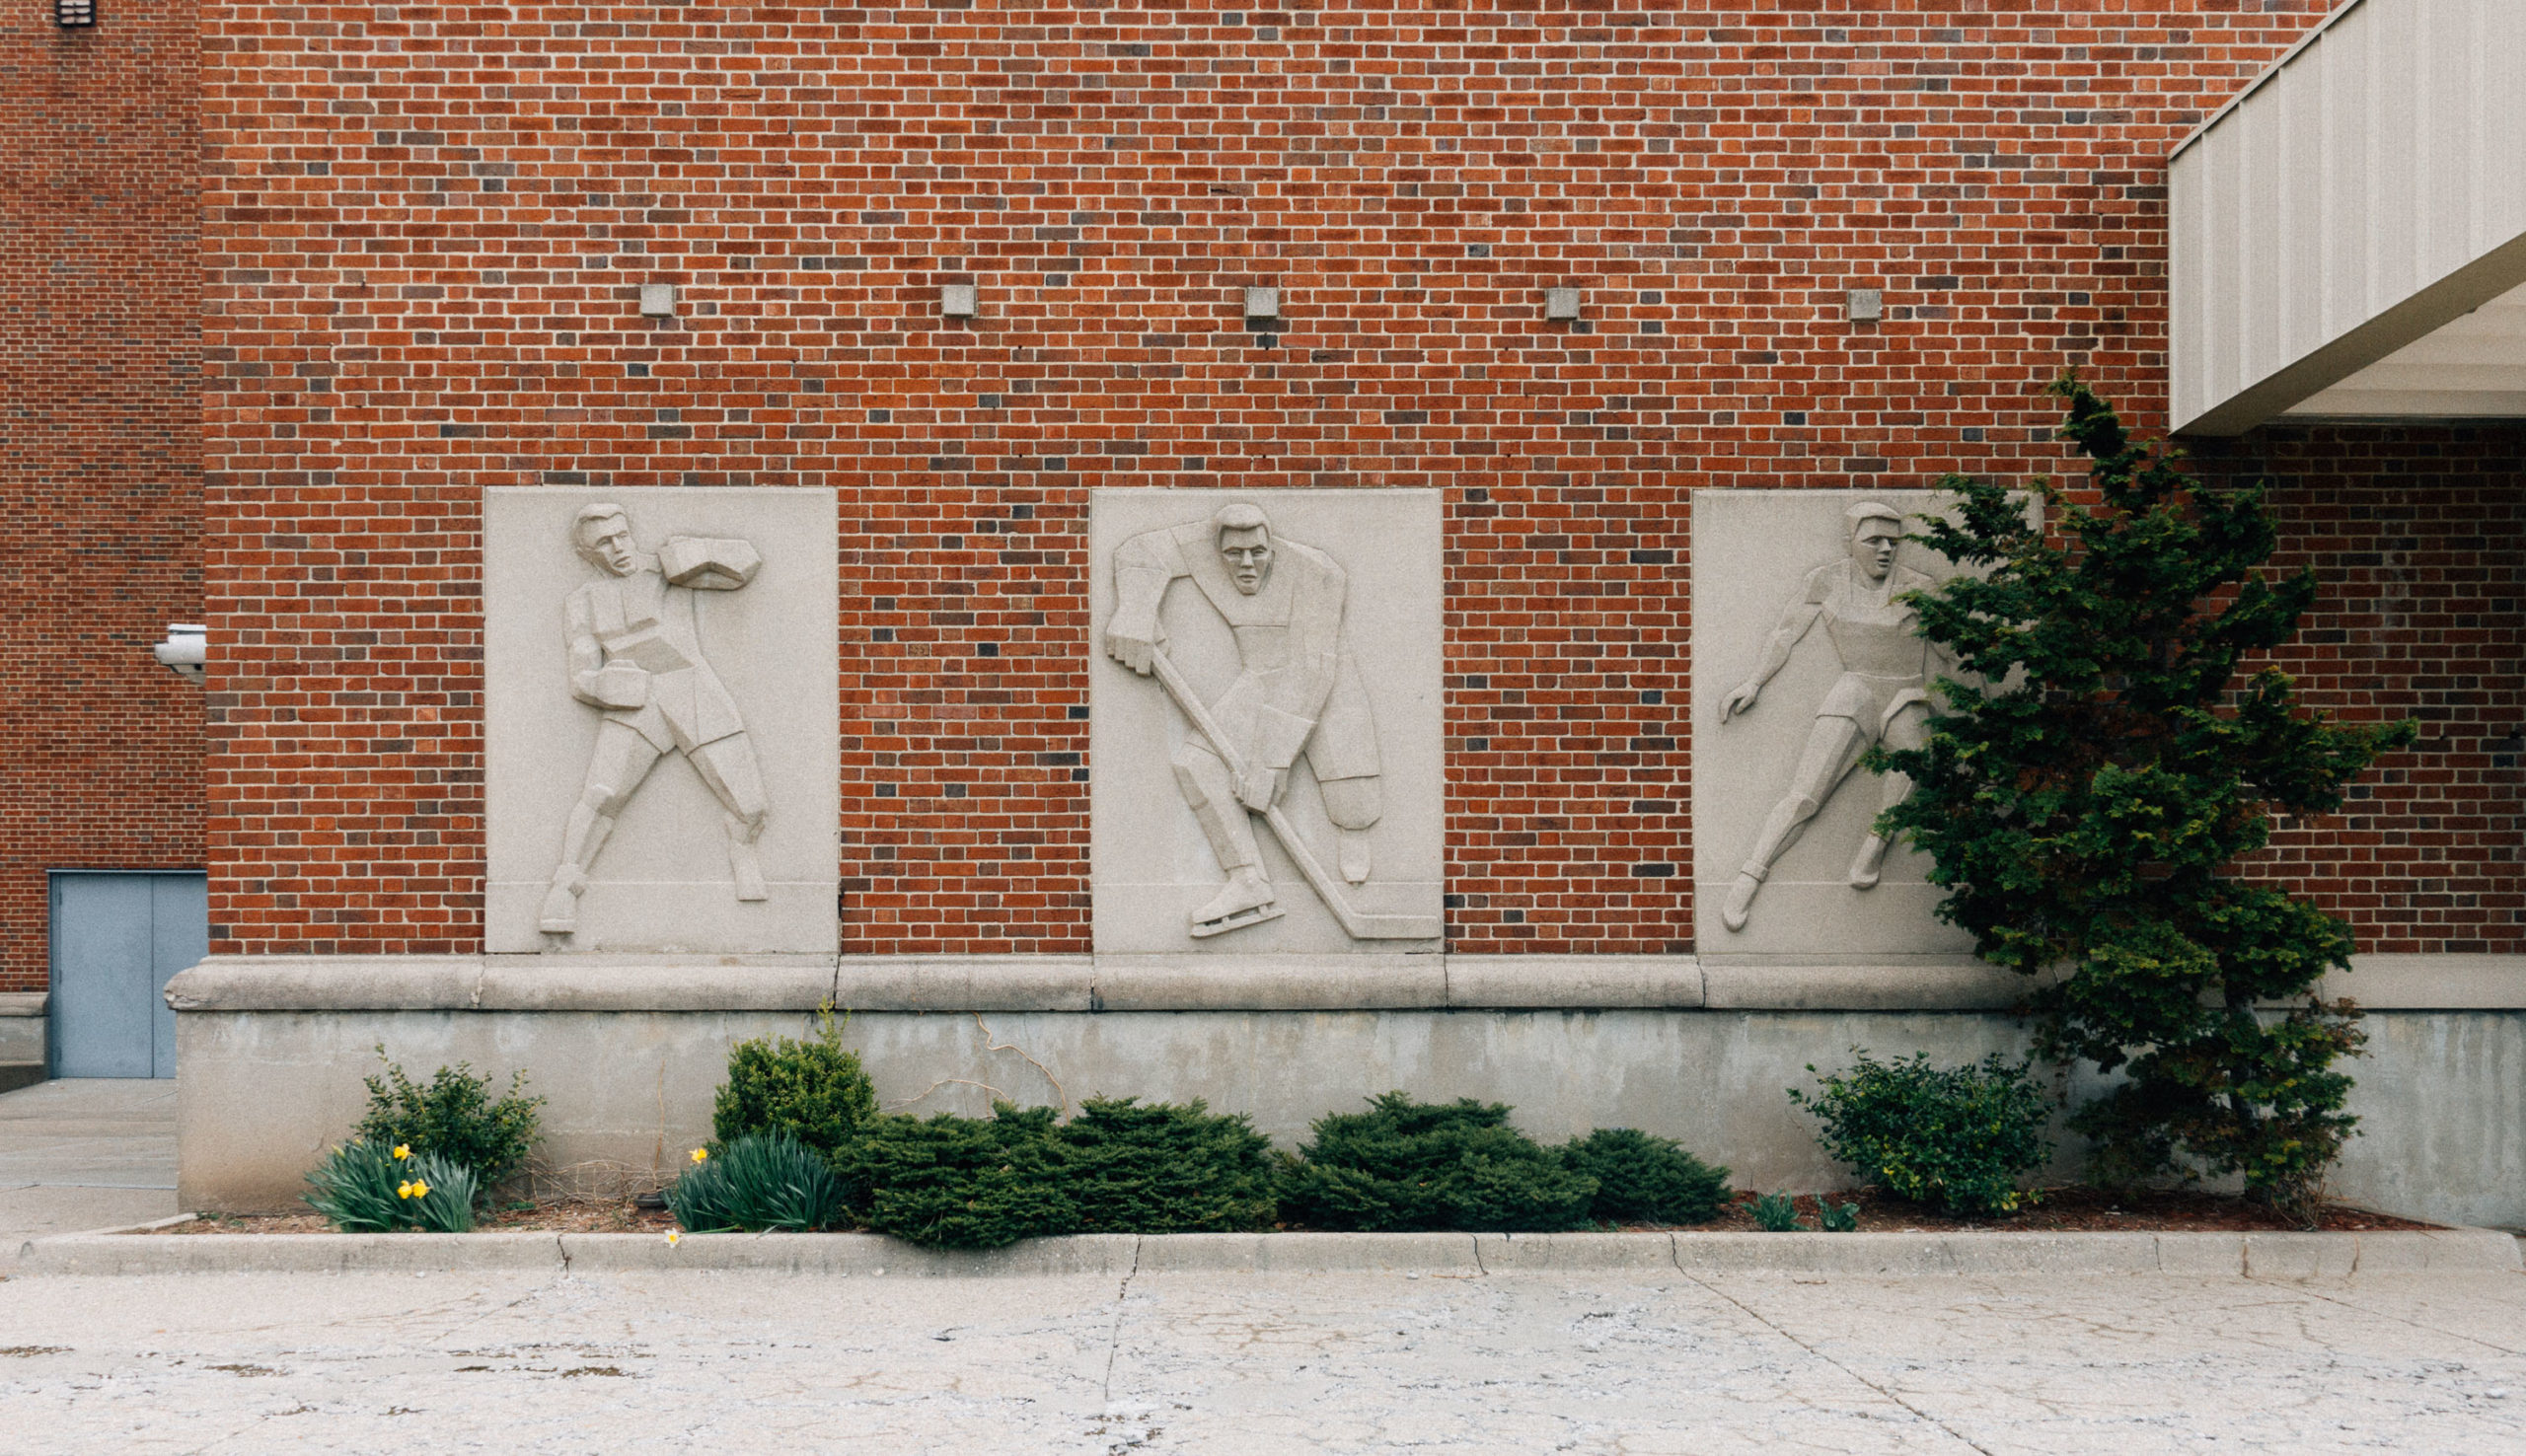 Details of sports relief figures on a brick building